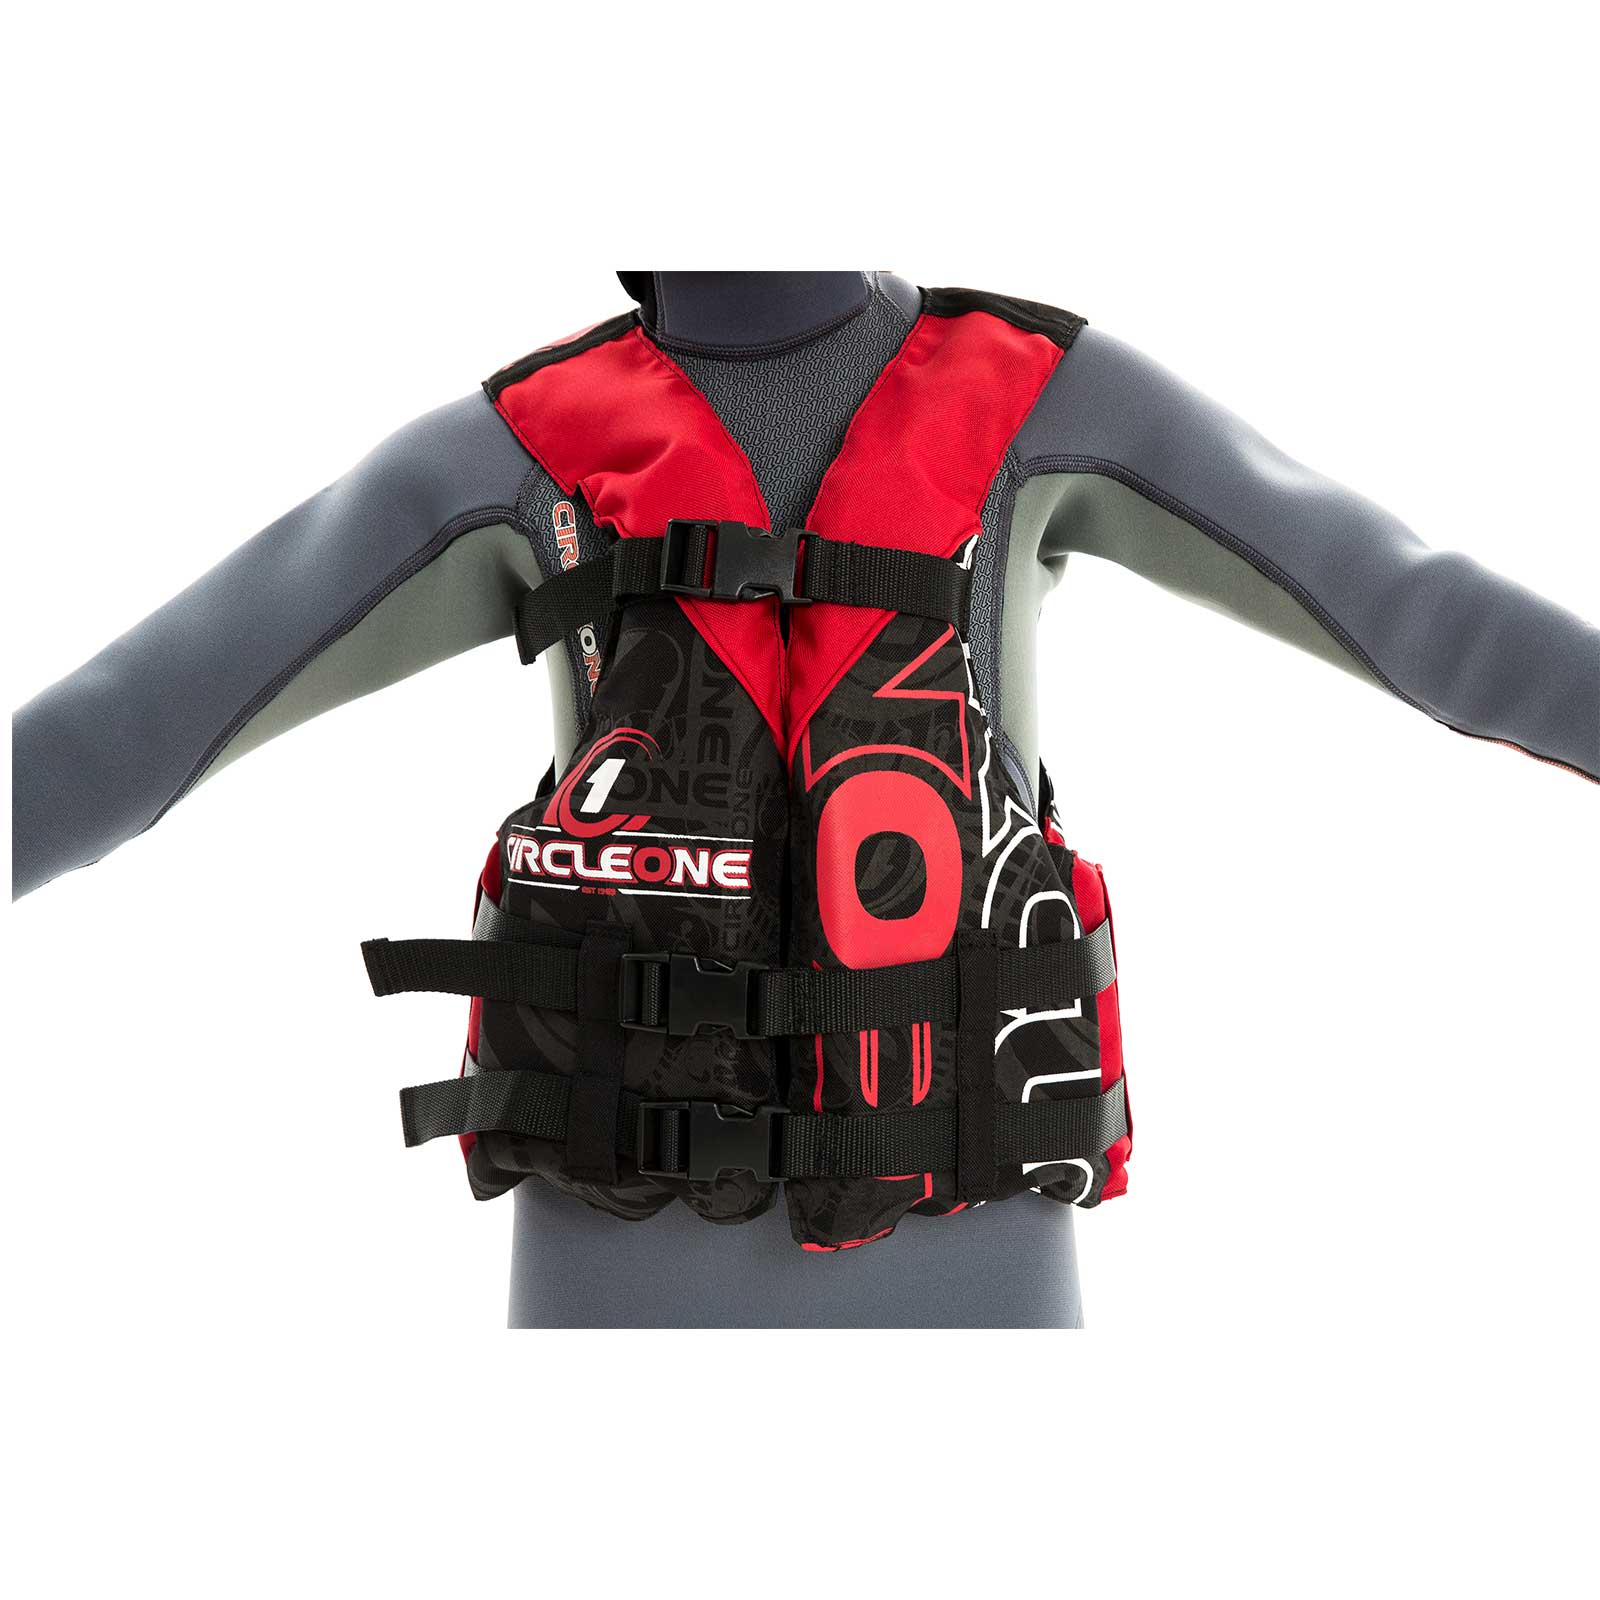 40N Youth Buoyancy Aid PFD with 3 Straps (CE EN393)